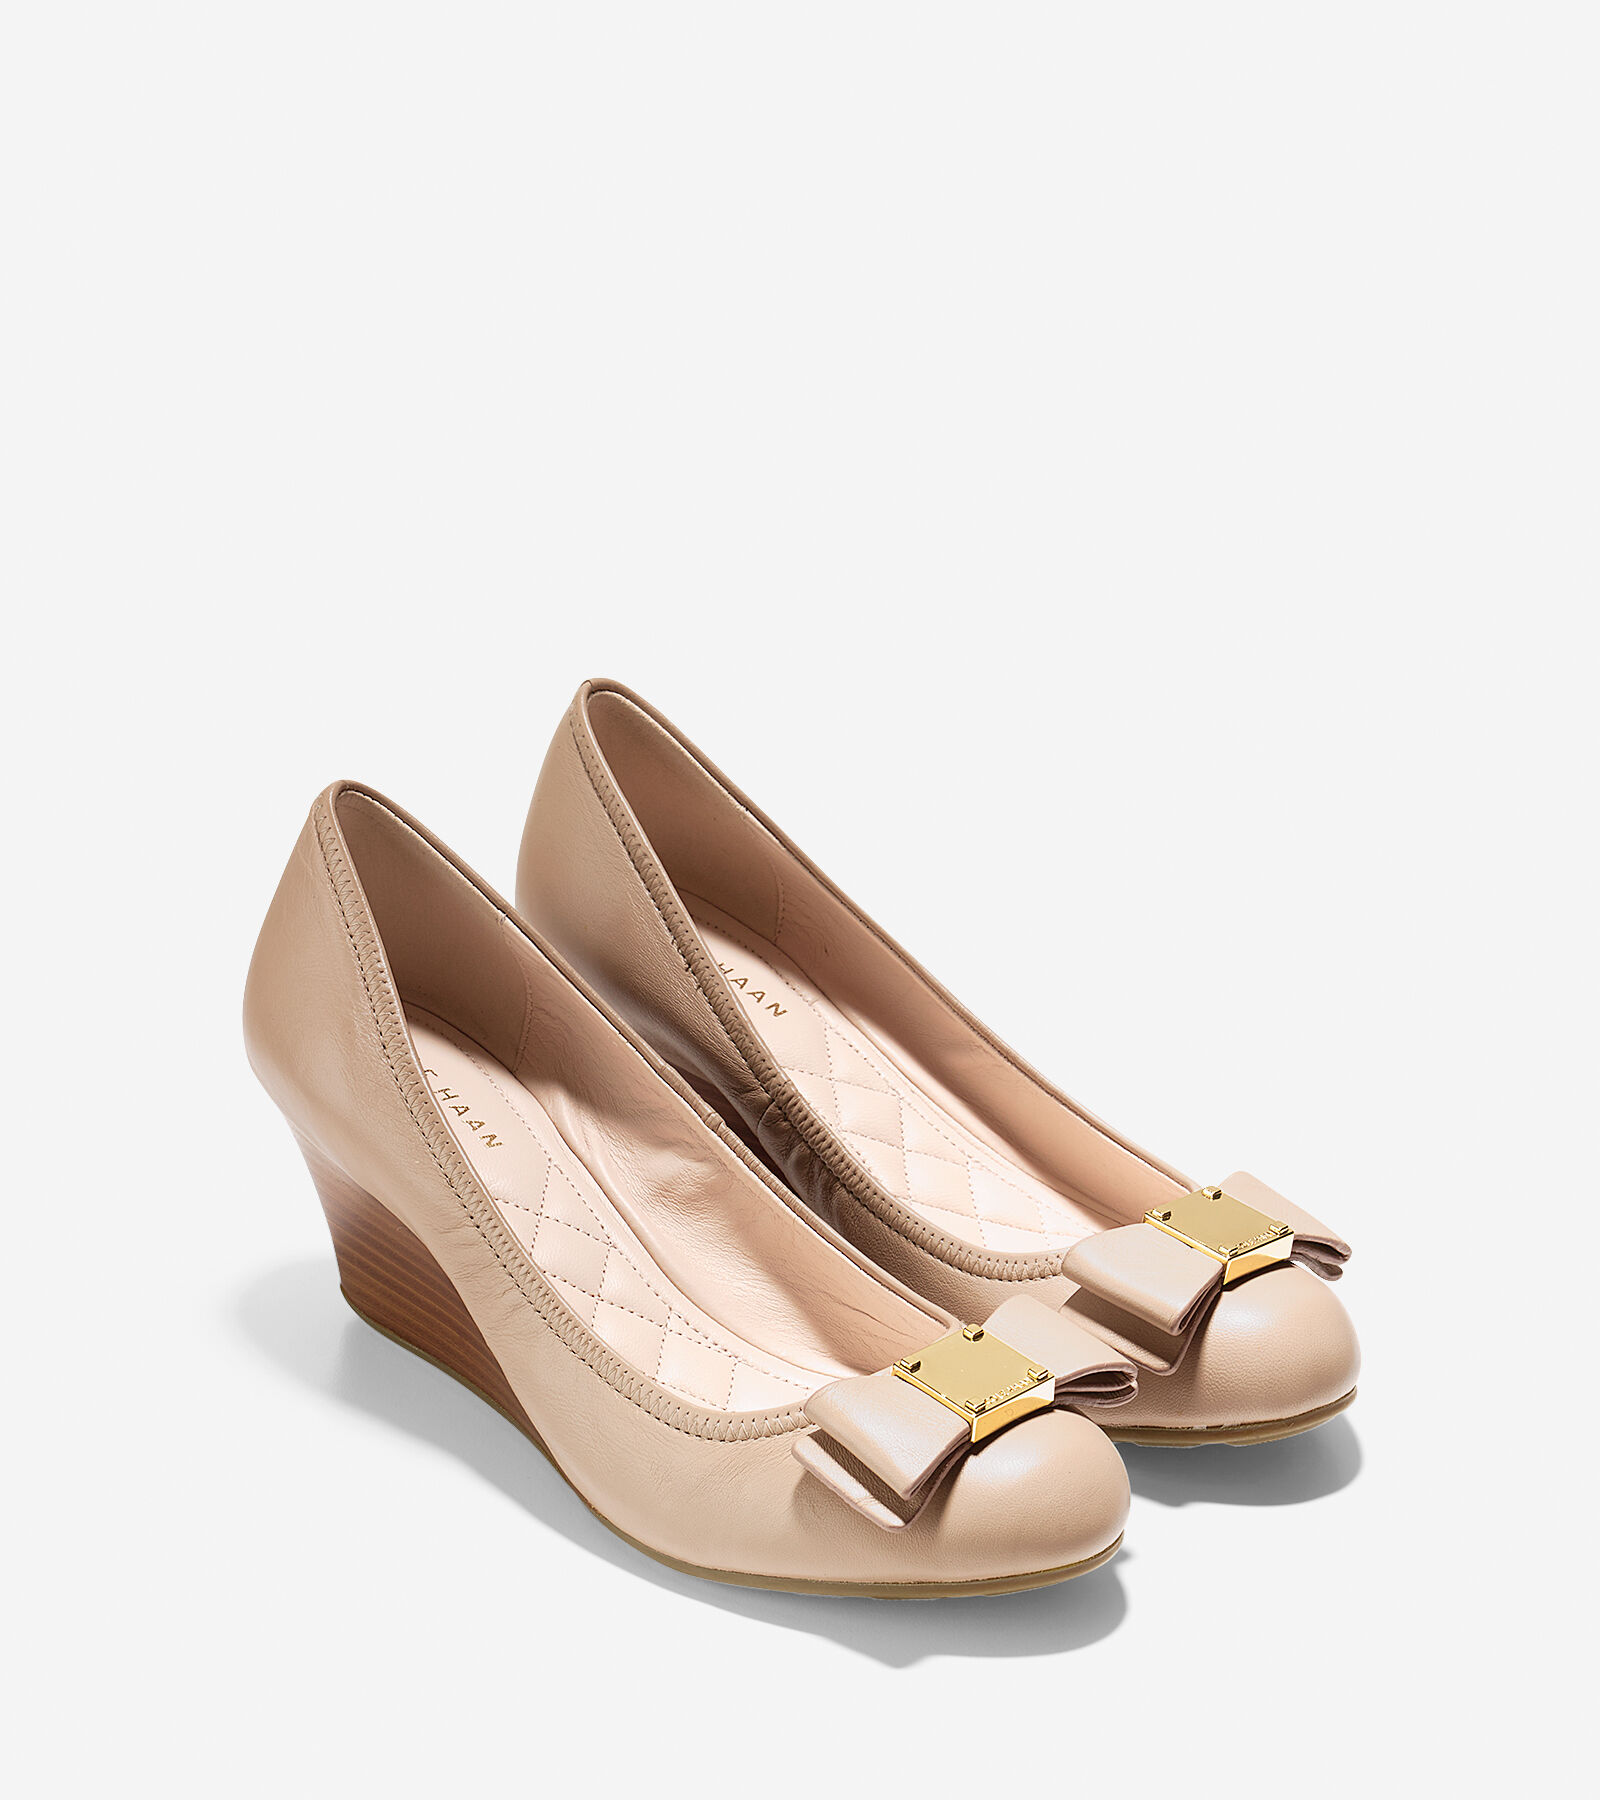 cole haan shoes grand 65mm equals how many cm 705361